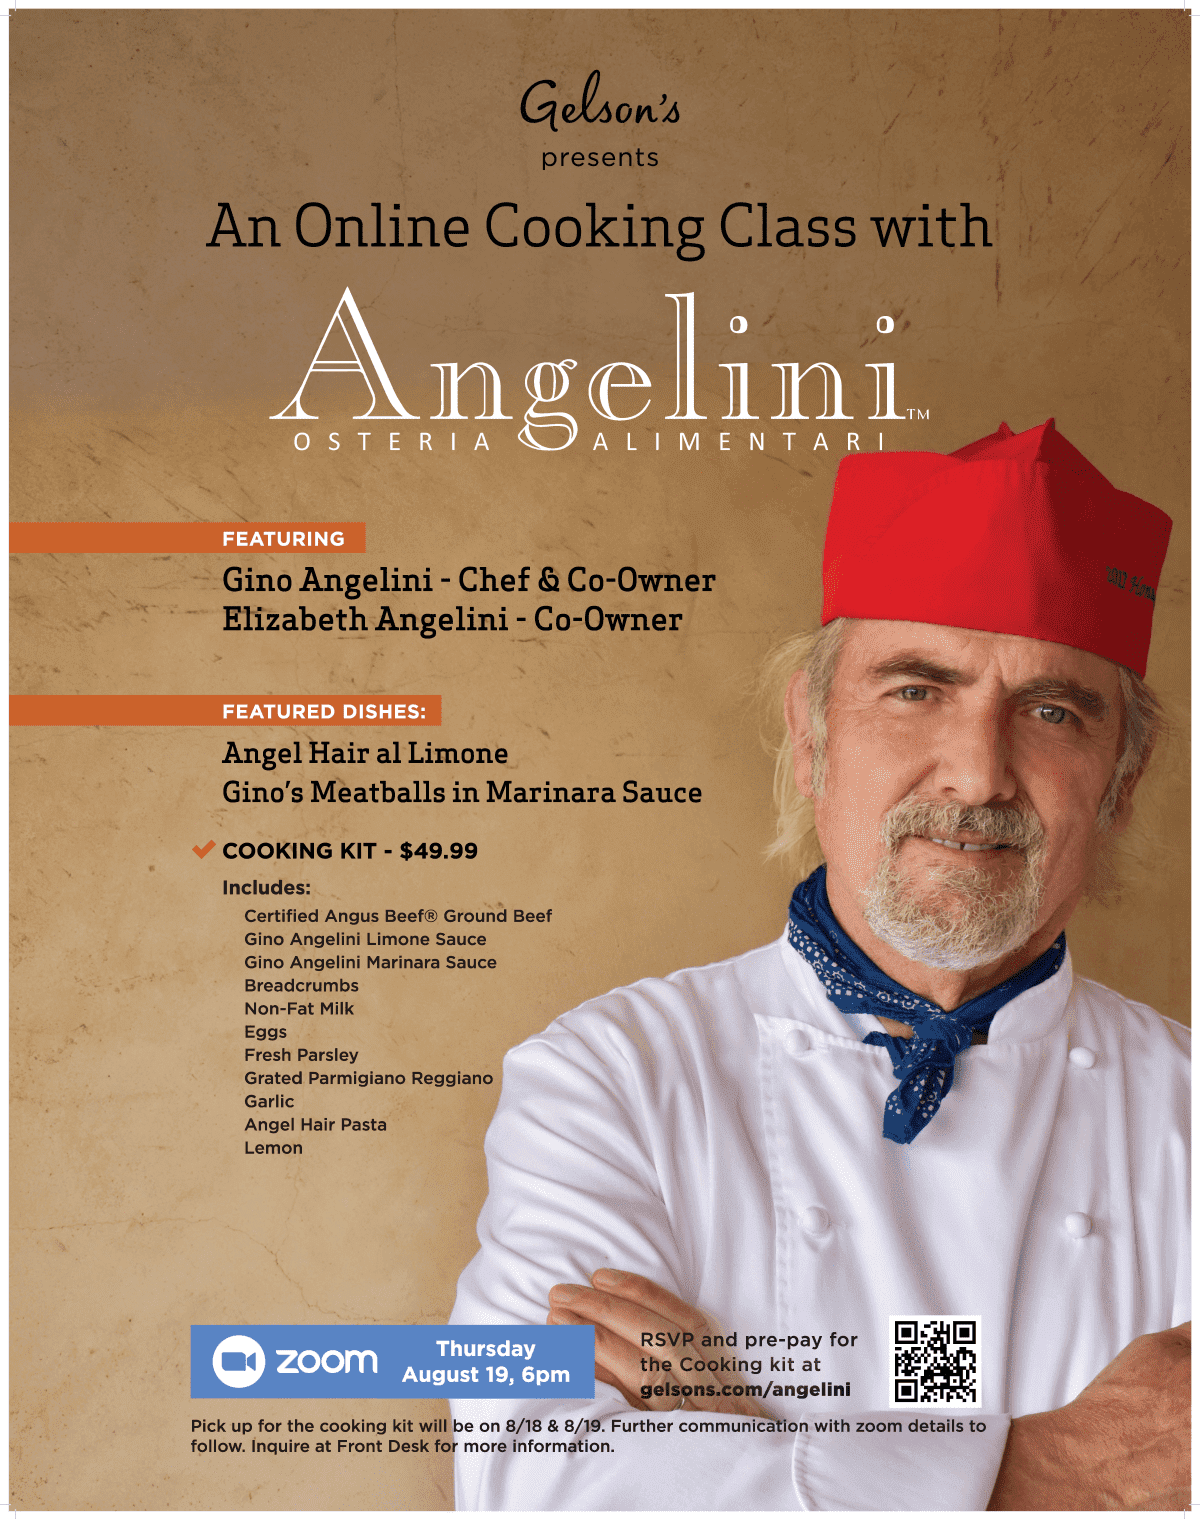 Angelini Osteria cooking class